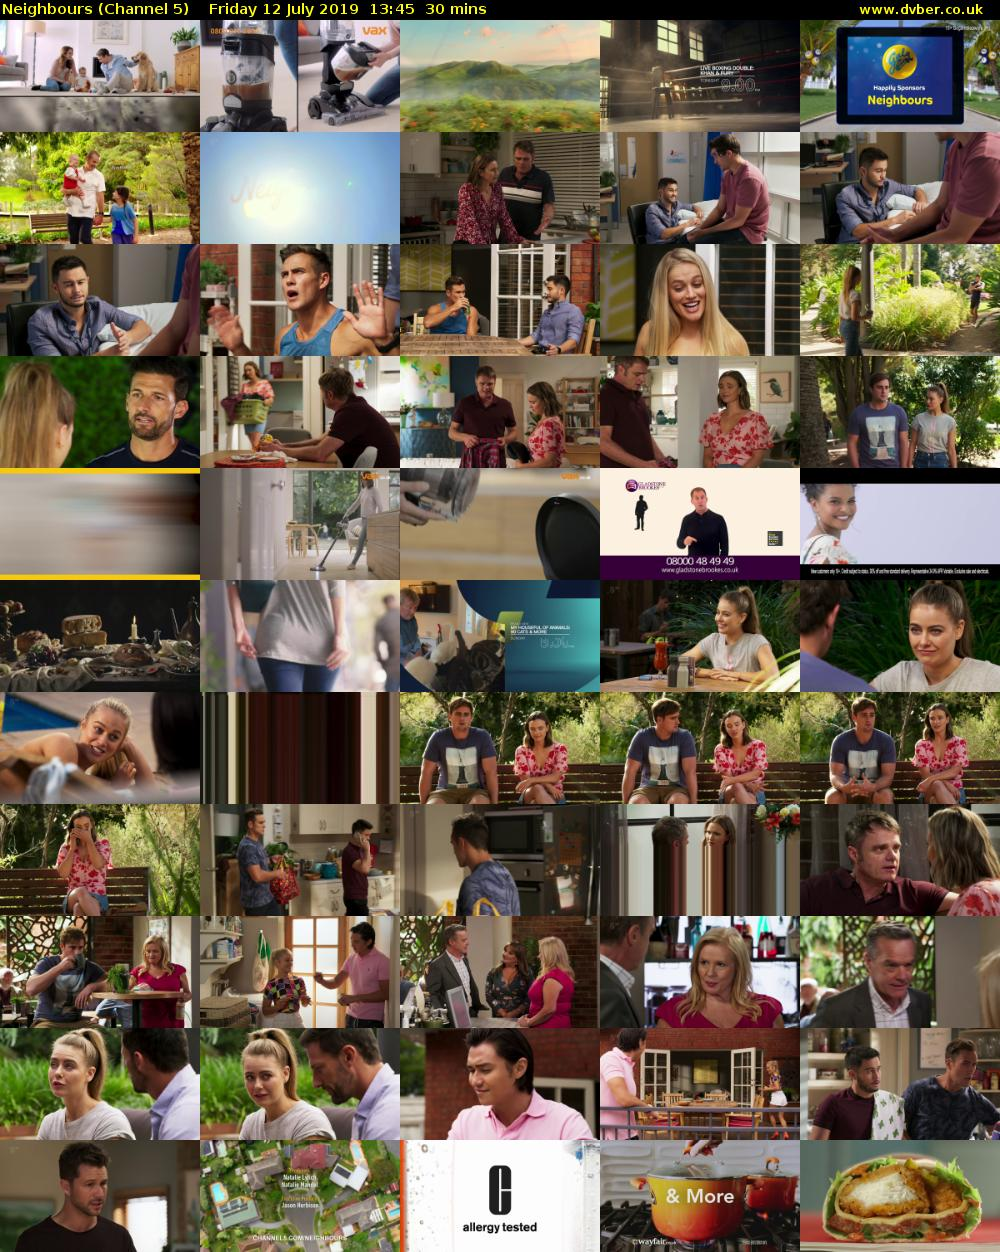 Neighbours (Channel 5) Friday 12 July 2019 13:45 - 14:15